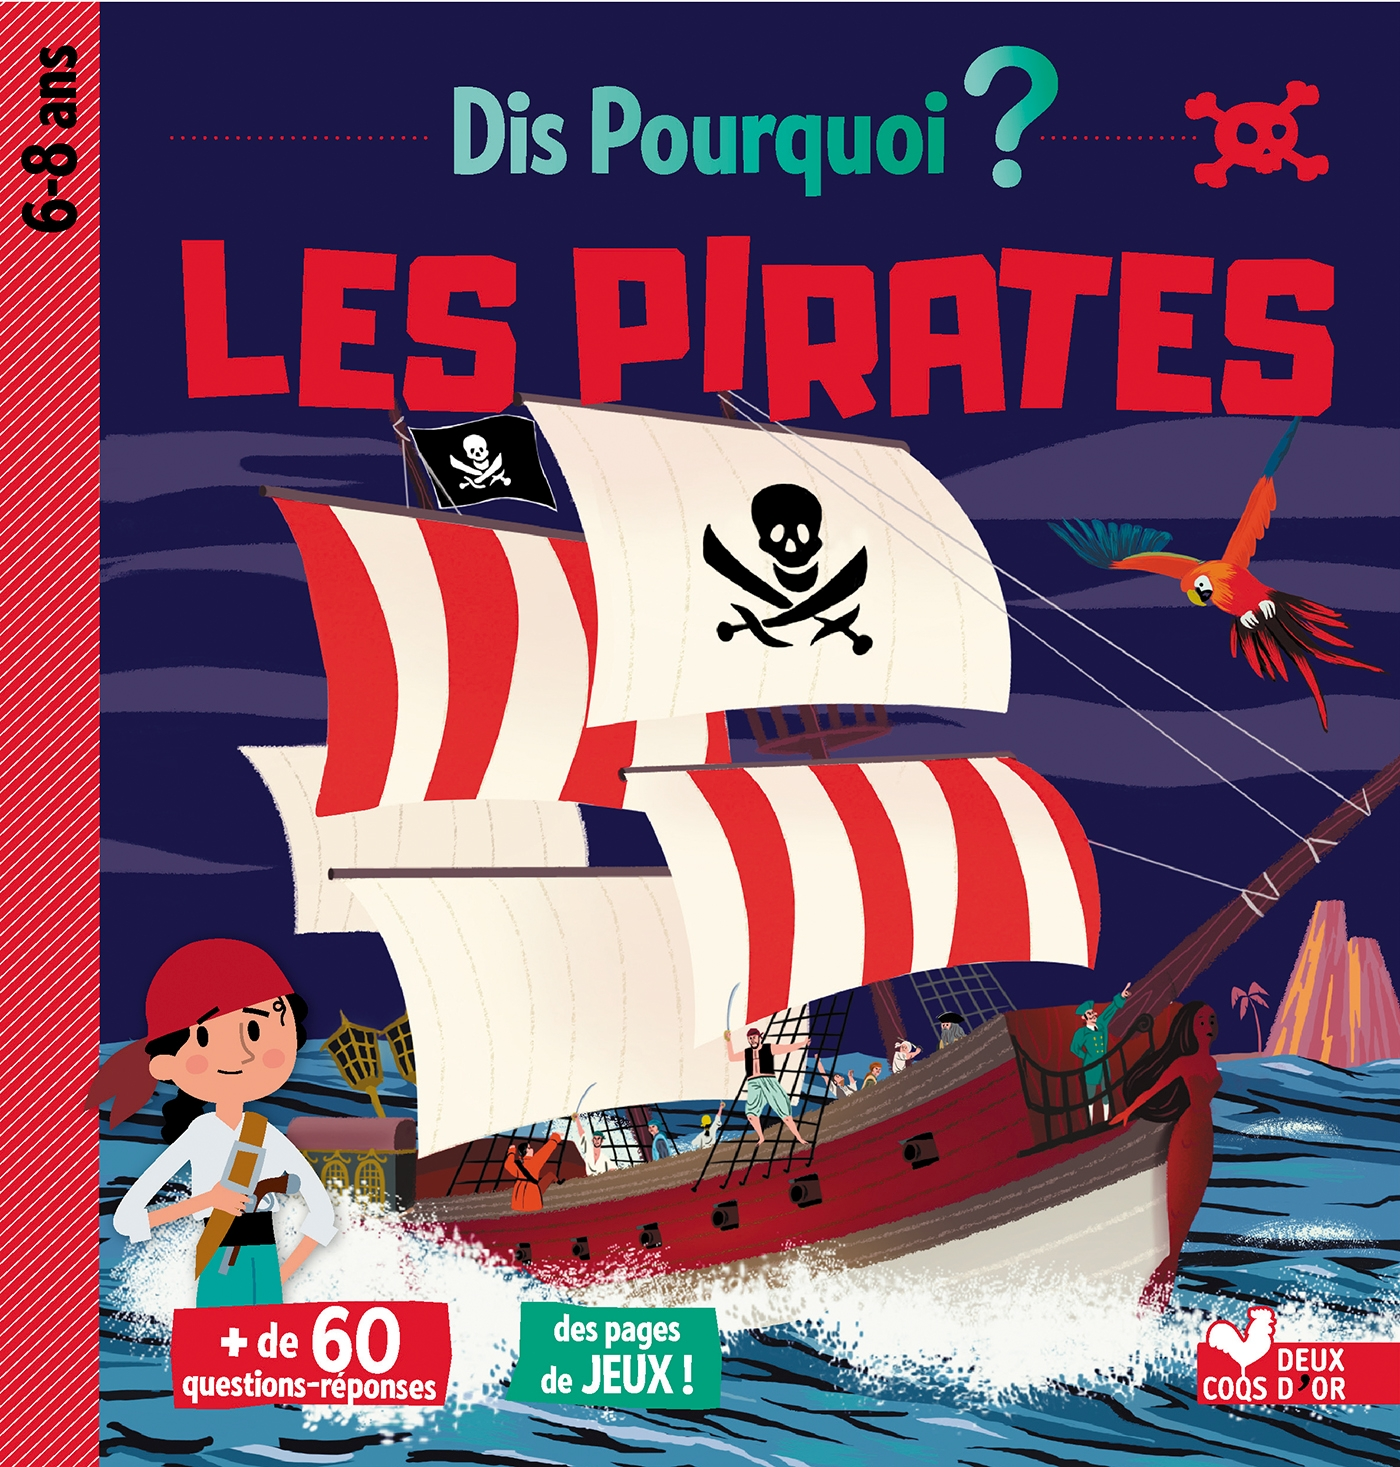 Dis pourquoi les pirates | Collectif, . Illustrateur